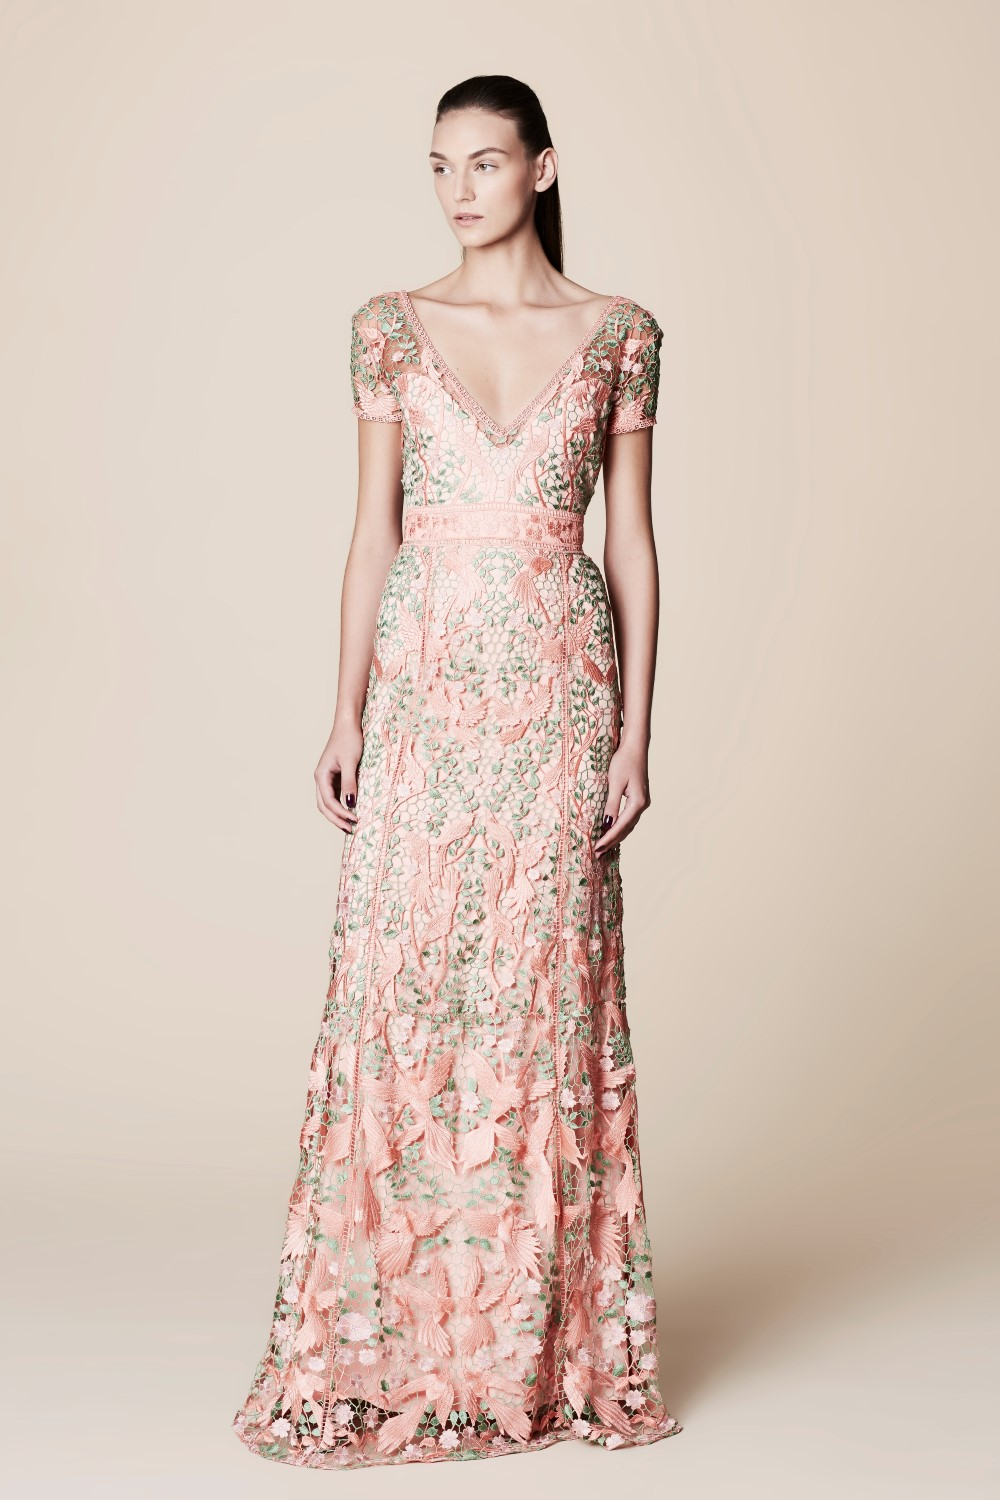 Marchesa Notte Gowns Are Really Getting My Attention These Days. They Are  So Utterly Lovely, Reasonably Priced, Well Made And Eye Catching.